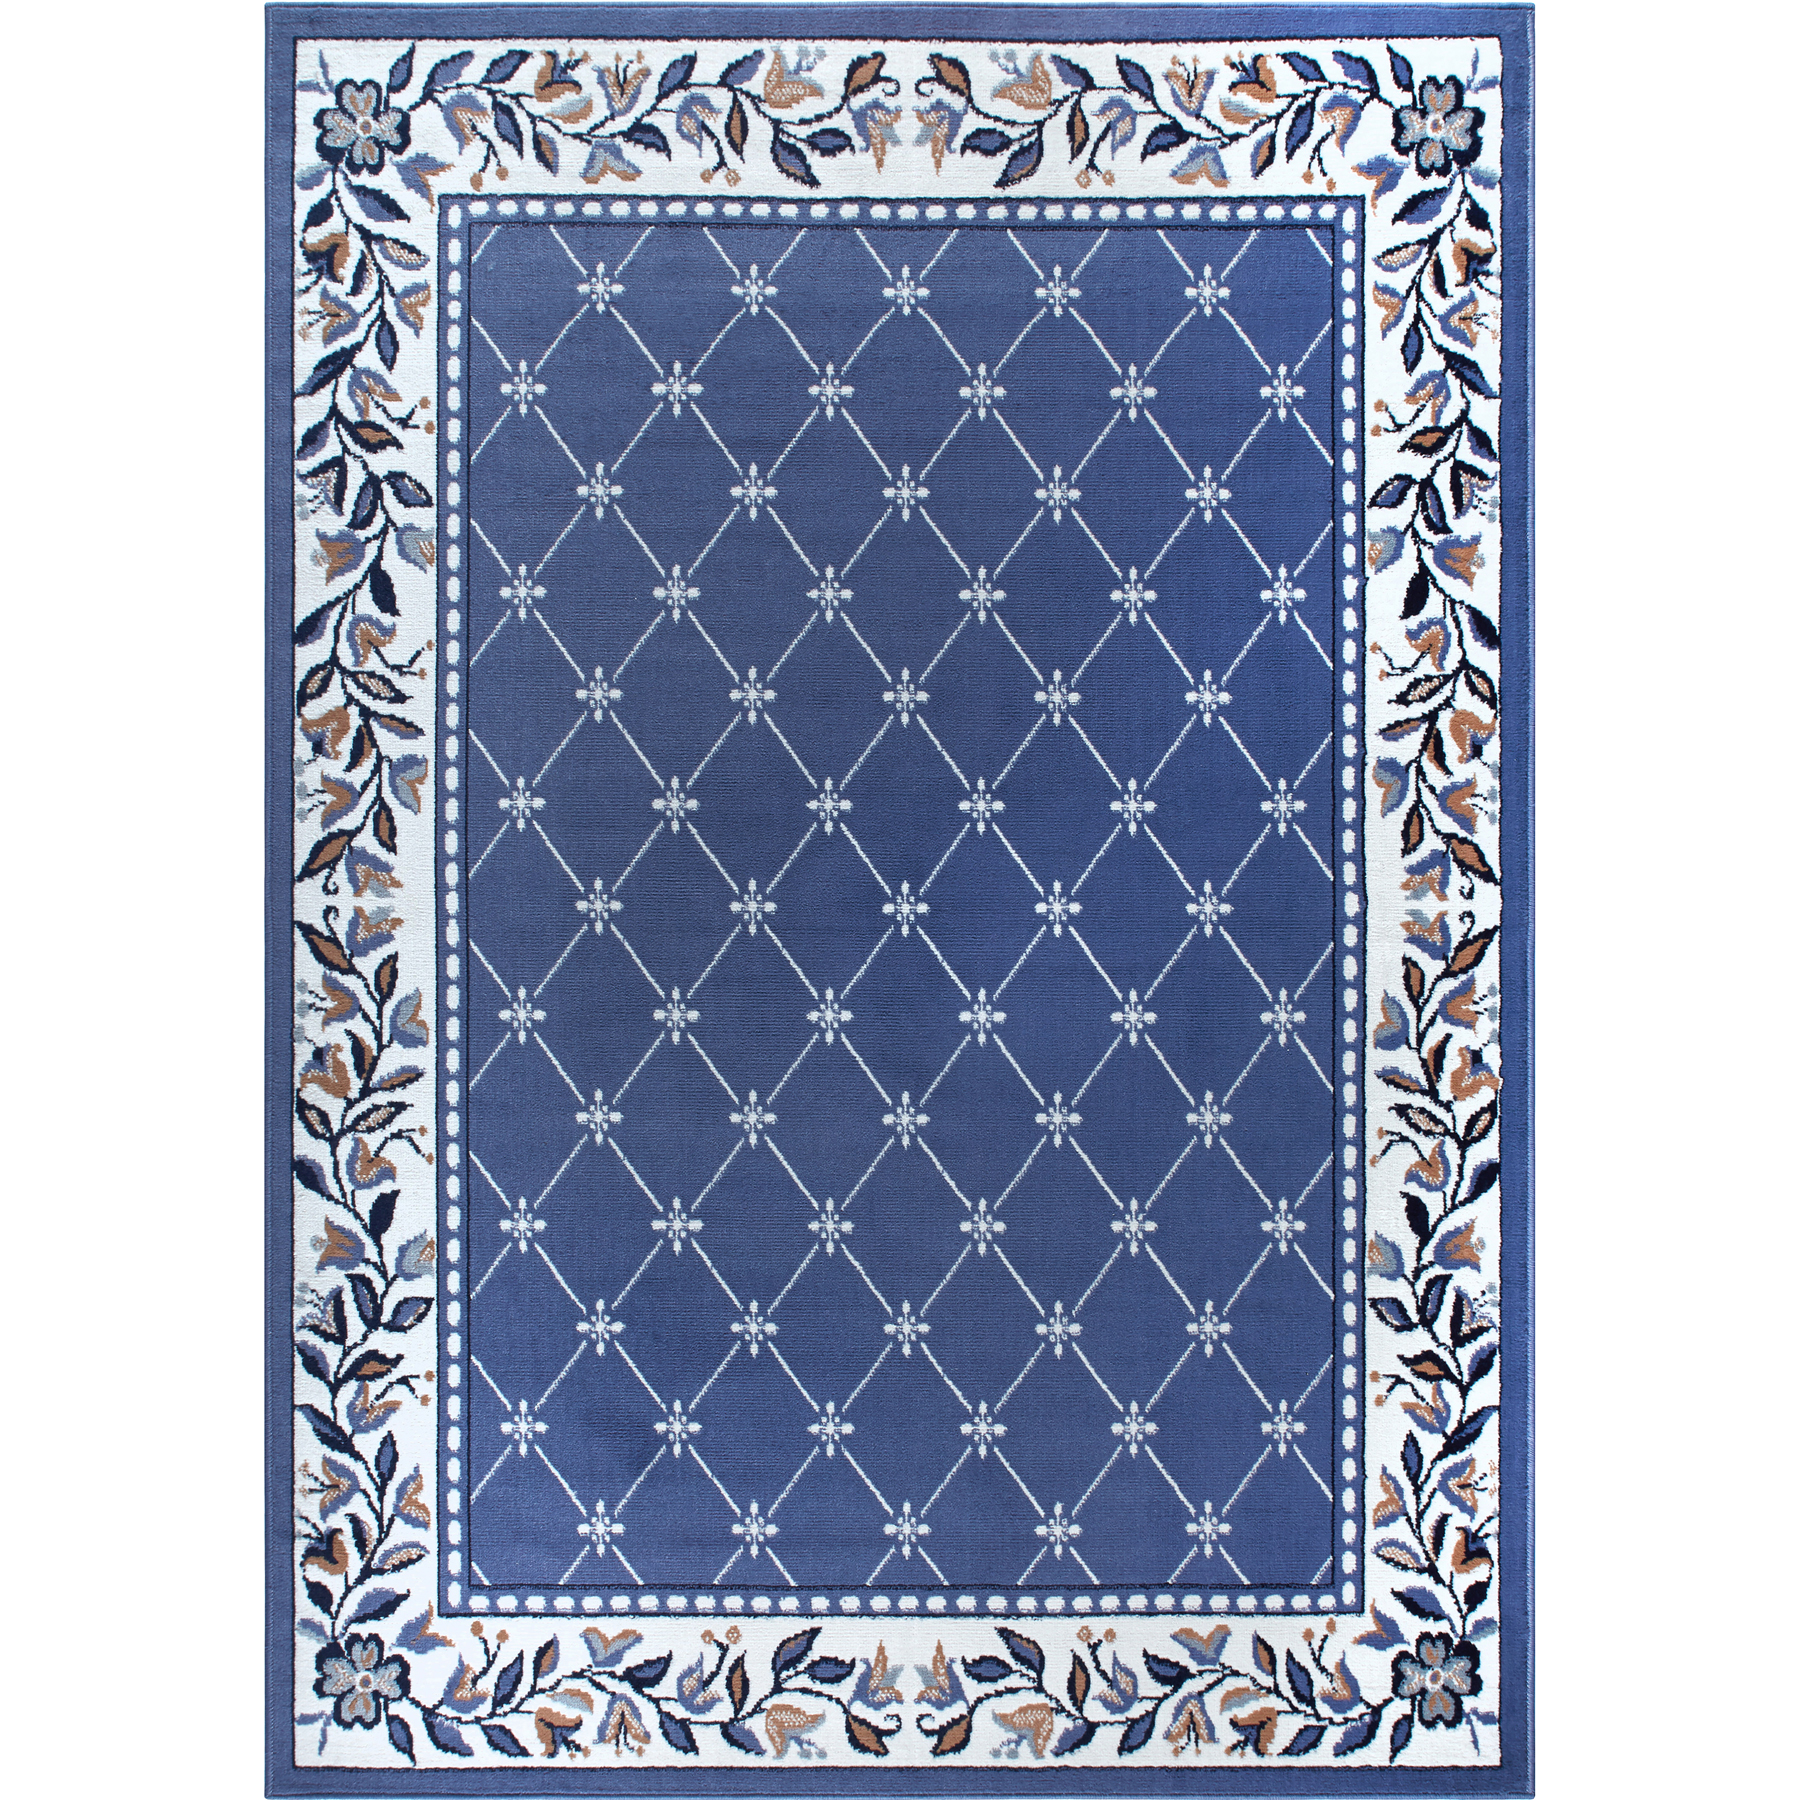 Trellis Moroccan Tile Area Rug Or Floral Lattice Modern